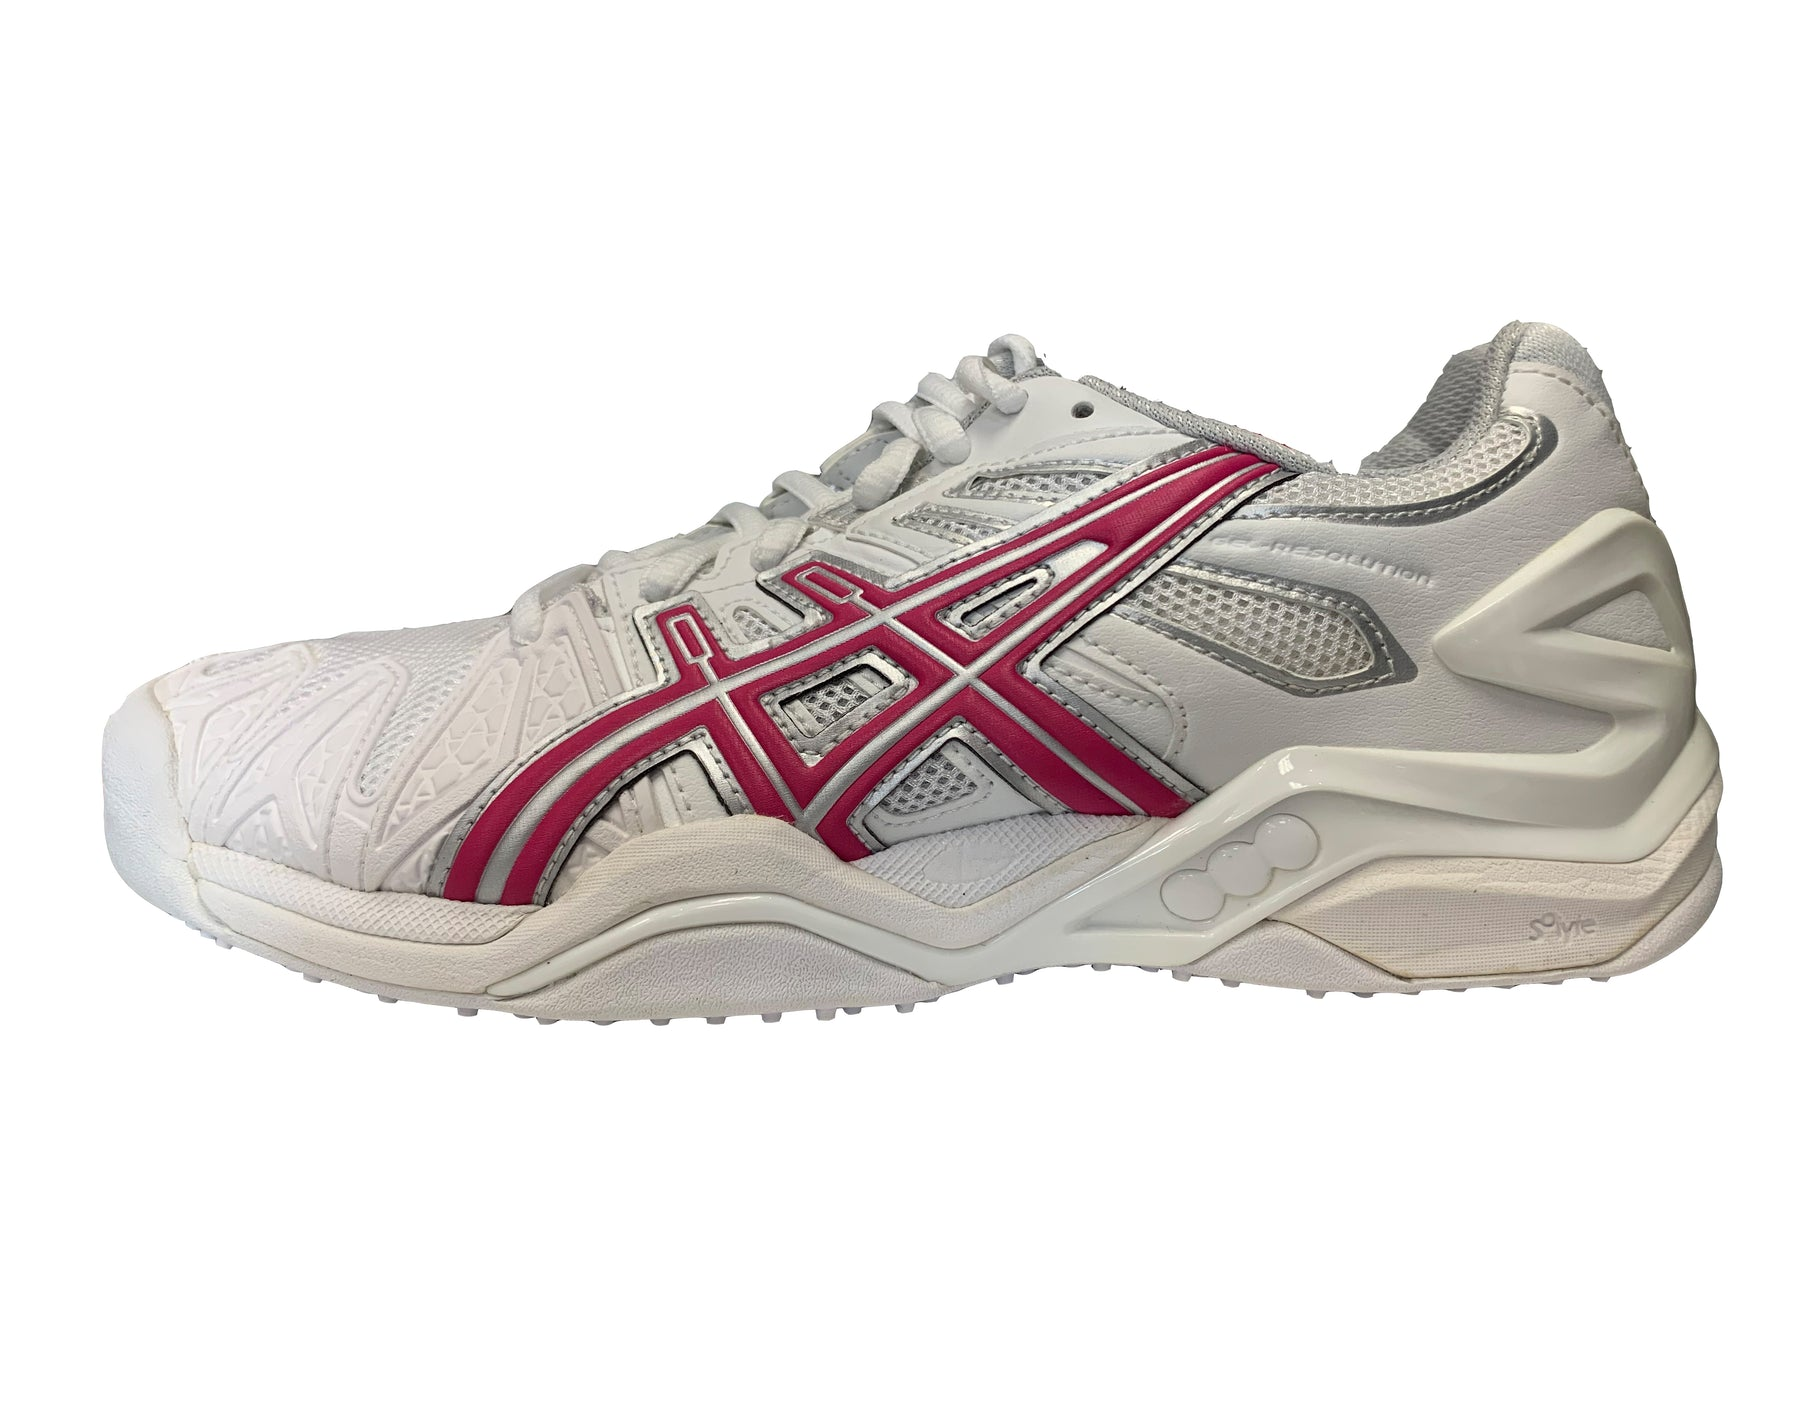 Asics Women's Gel-Resolution 5 Grass Court Tennis Shoes in White/Raspberry/Silver